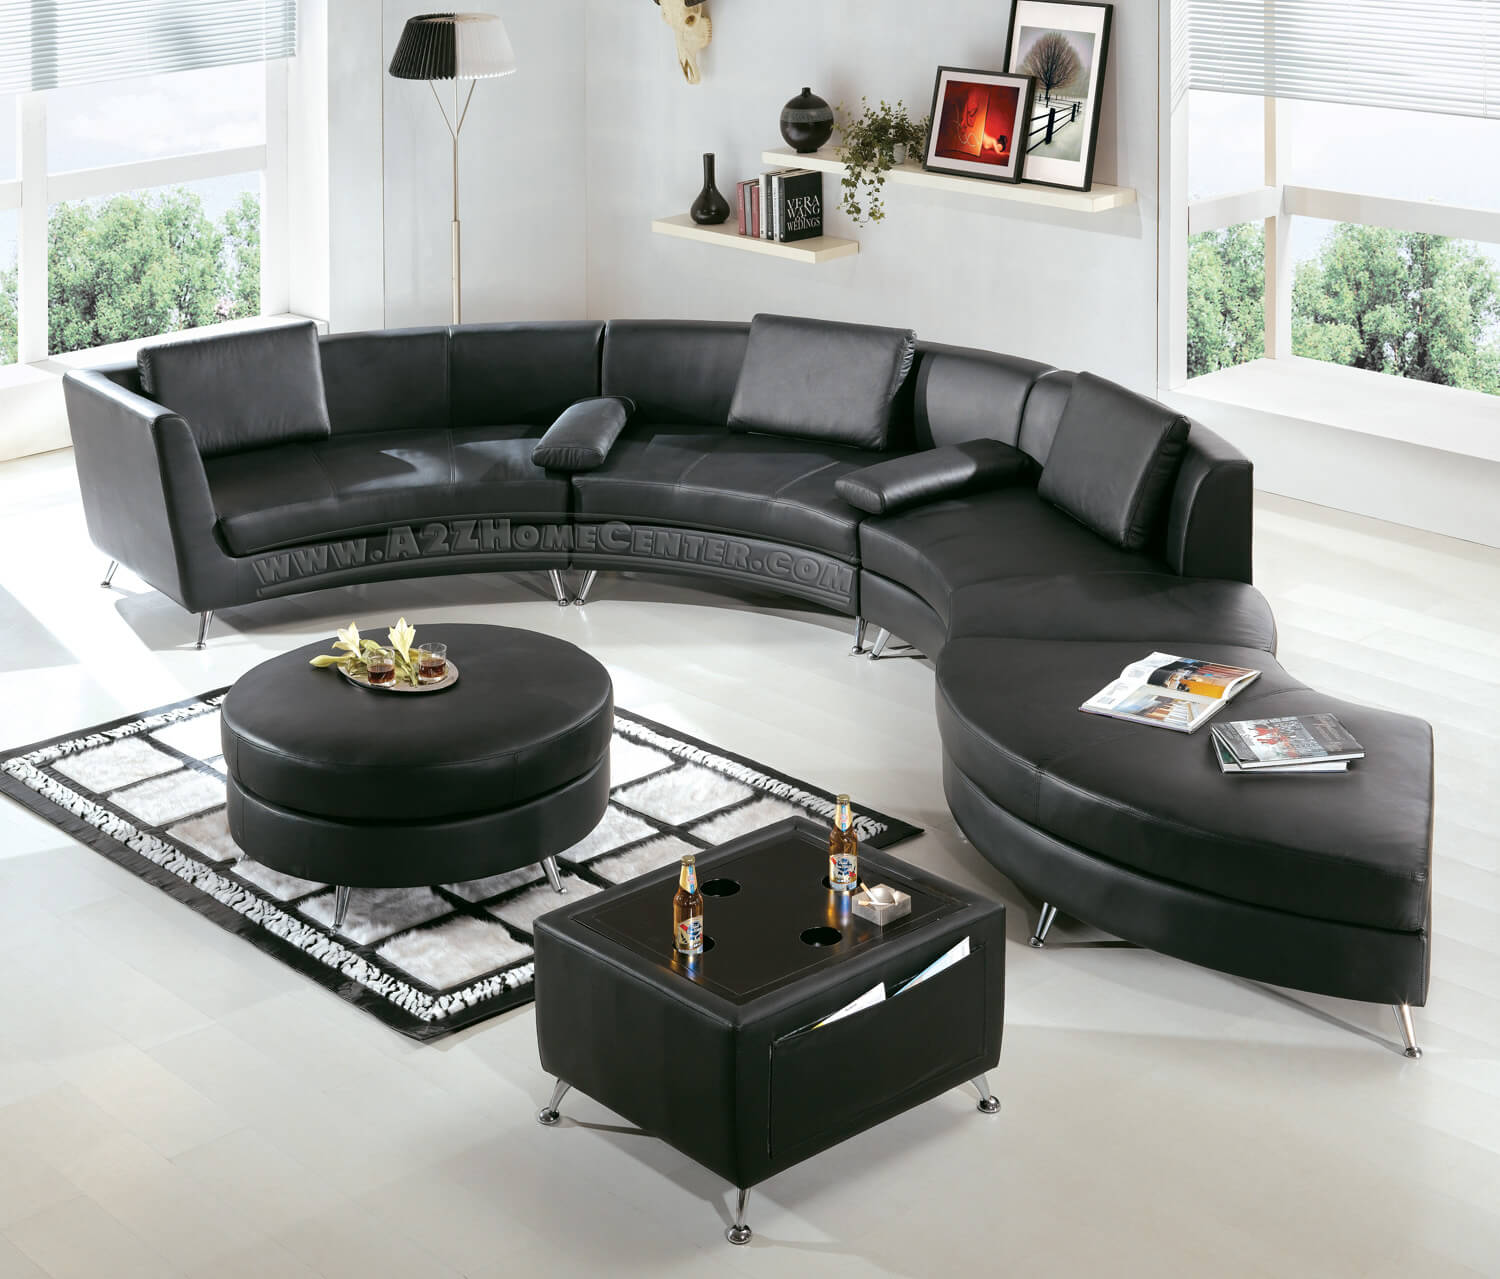 Jet black furniture that truly makes a statement